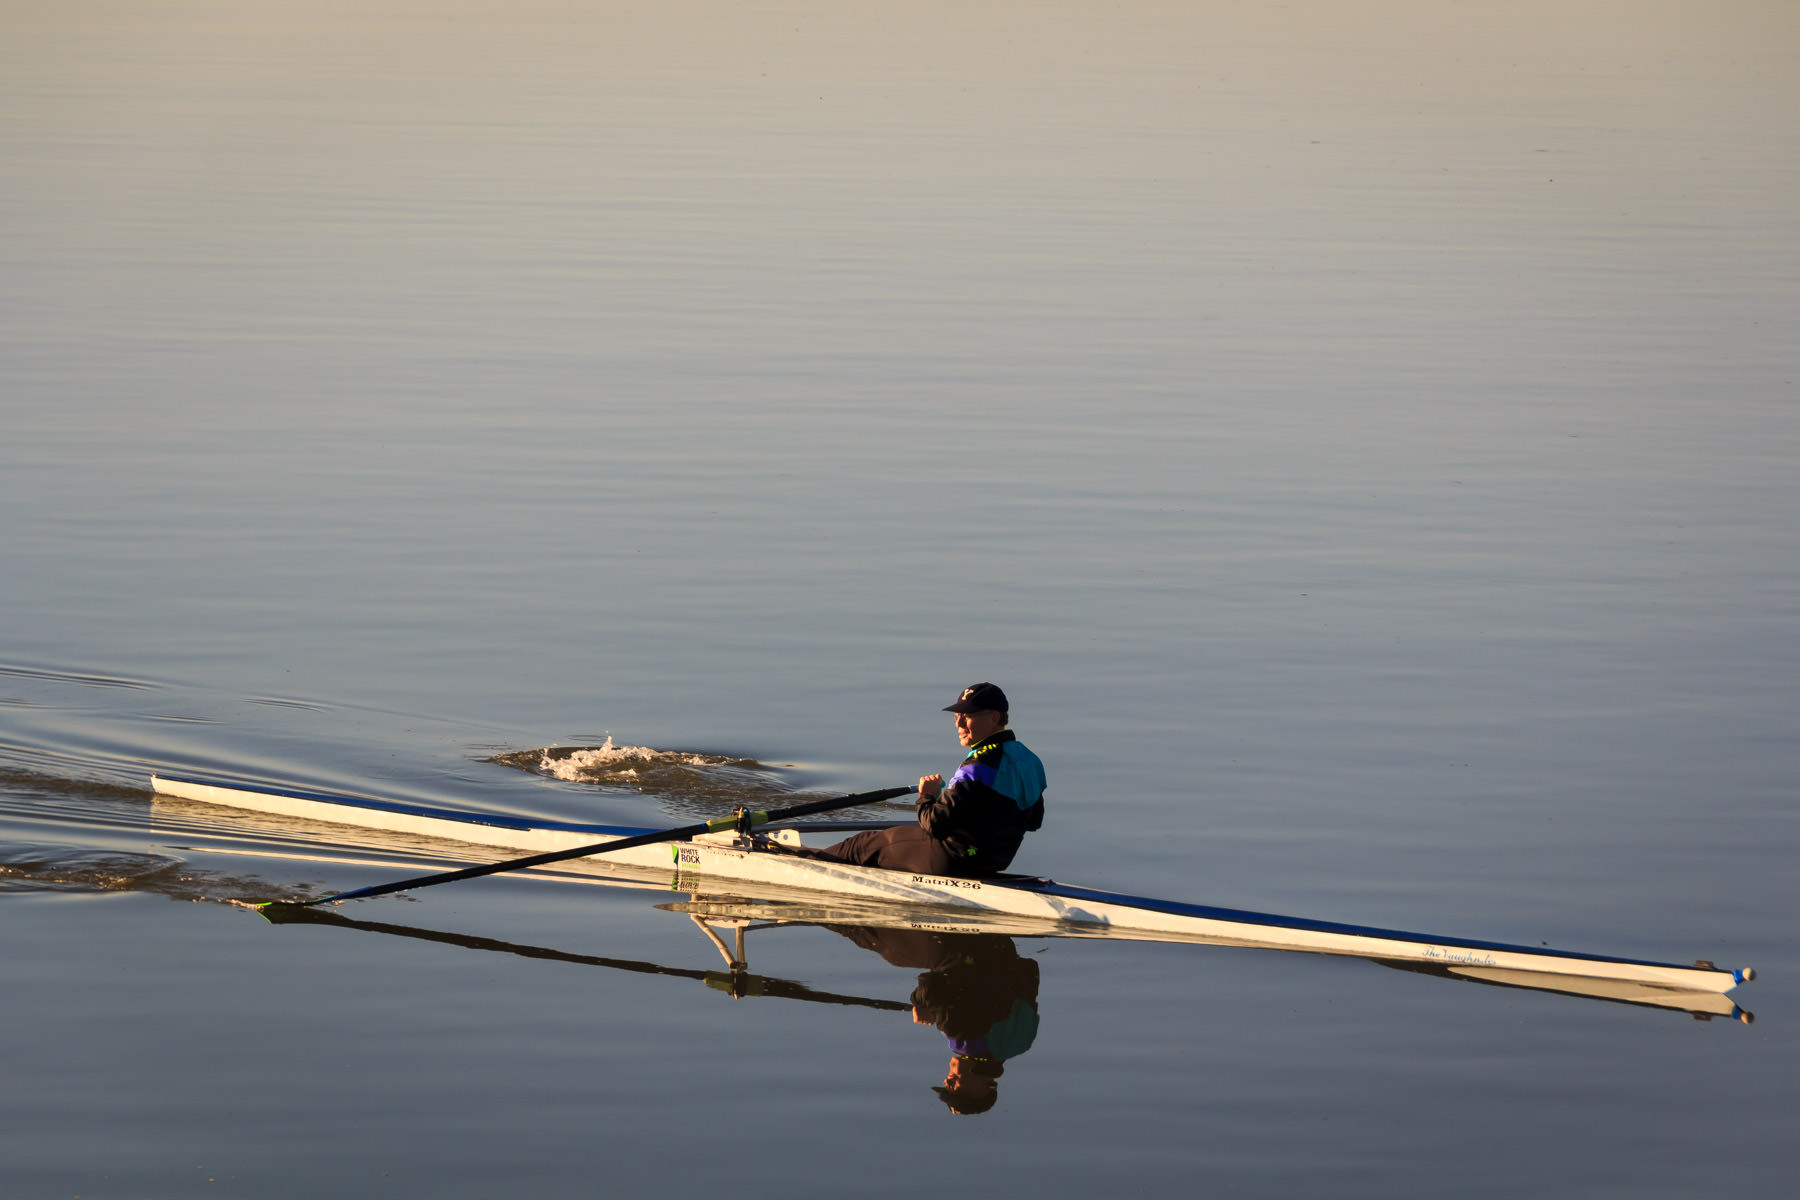 A rower glides across Dallas' White Rock Lake just after dawn on a winter morning.